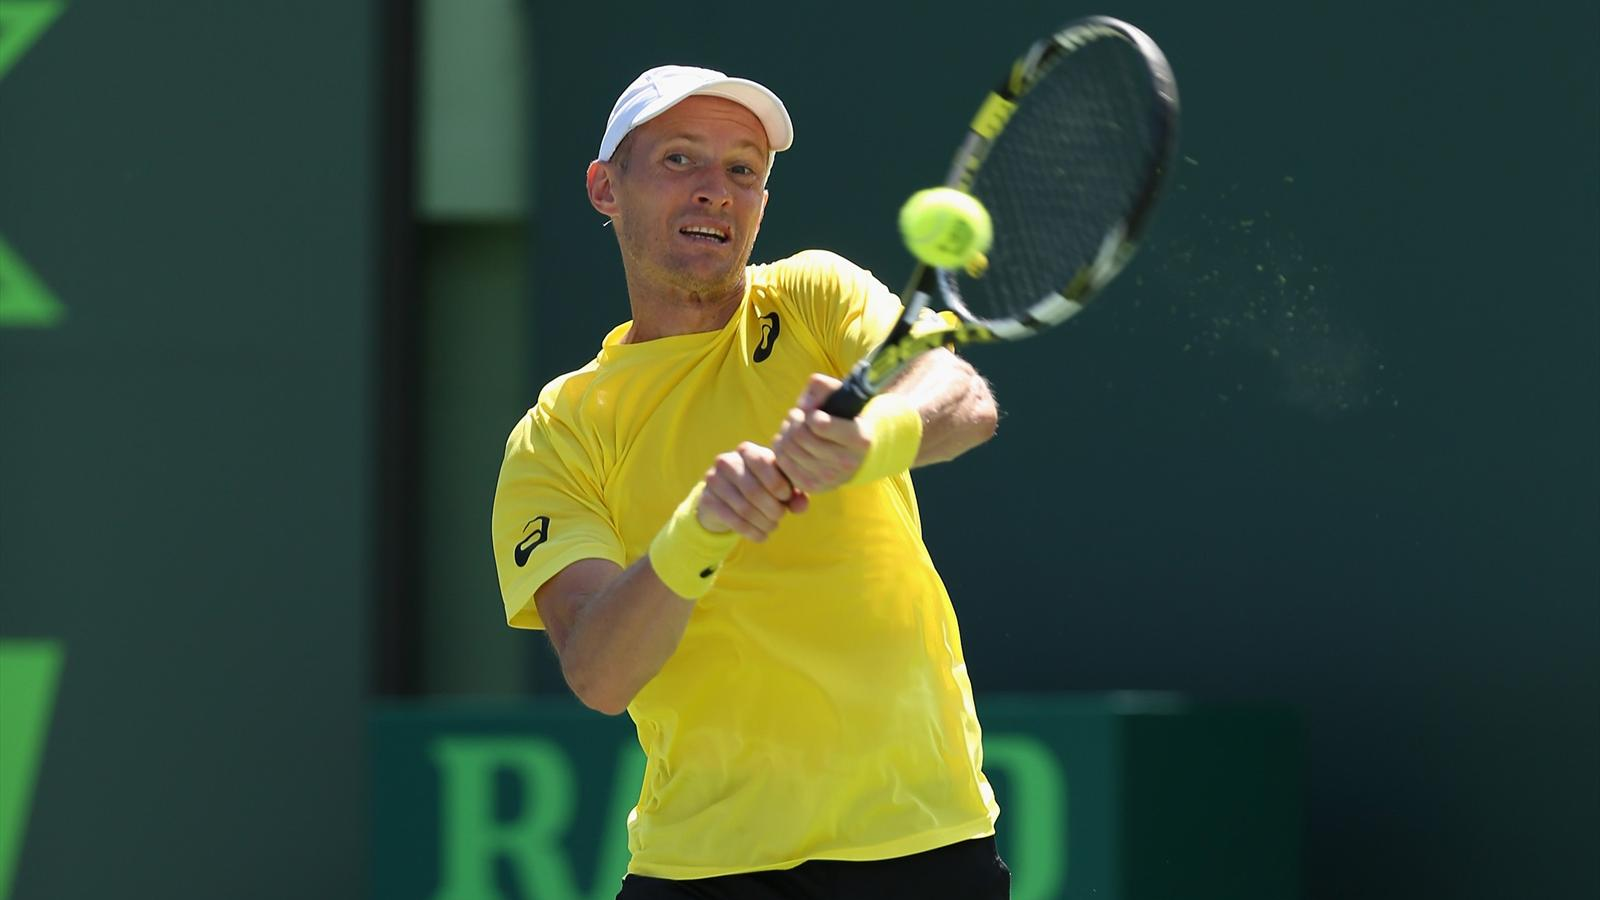 Nikolay Davydenko of Russia plays a backhand against Adrian Mannarino of France during their first round match at the Sony Open at Crandon Park Tennis Center (AFP)